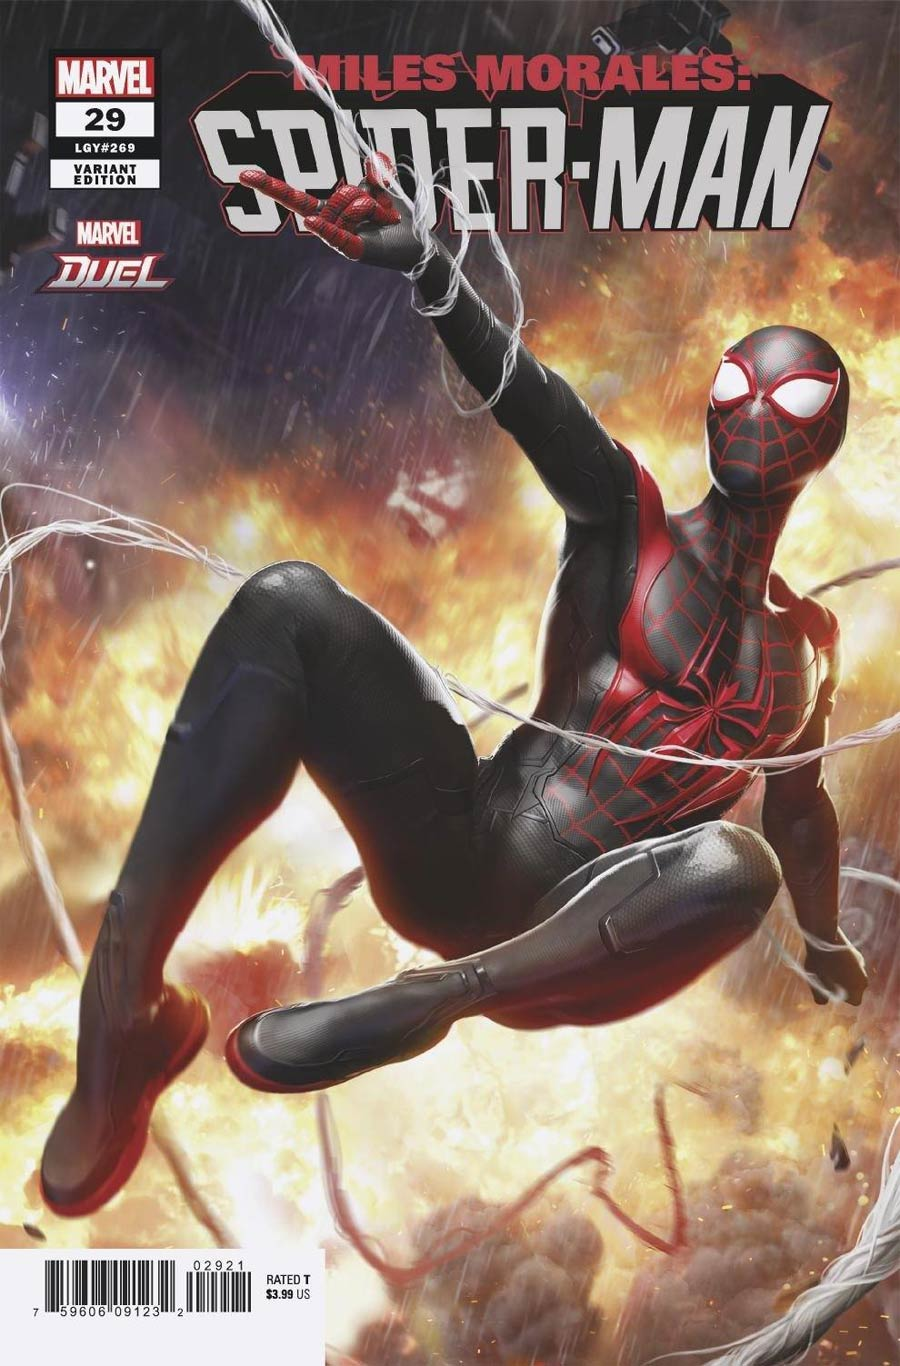 Miles Morales Spider-Man #29 Cover B Variant NetEase Marvel Games Cover (Limit 1 Per Customer)